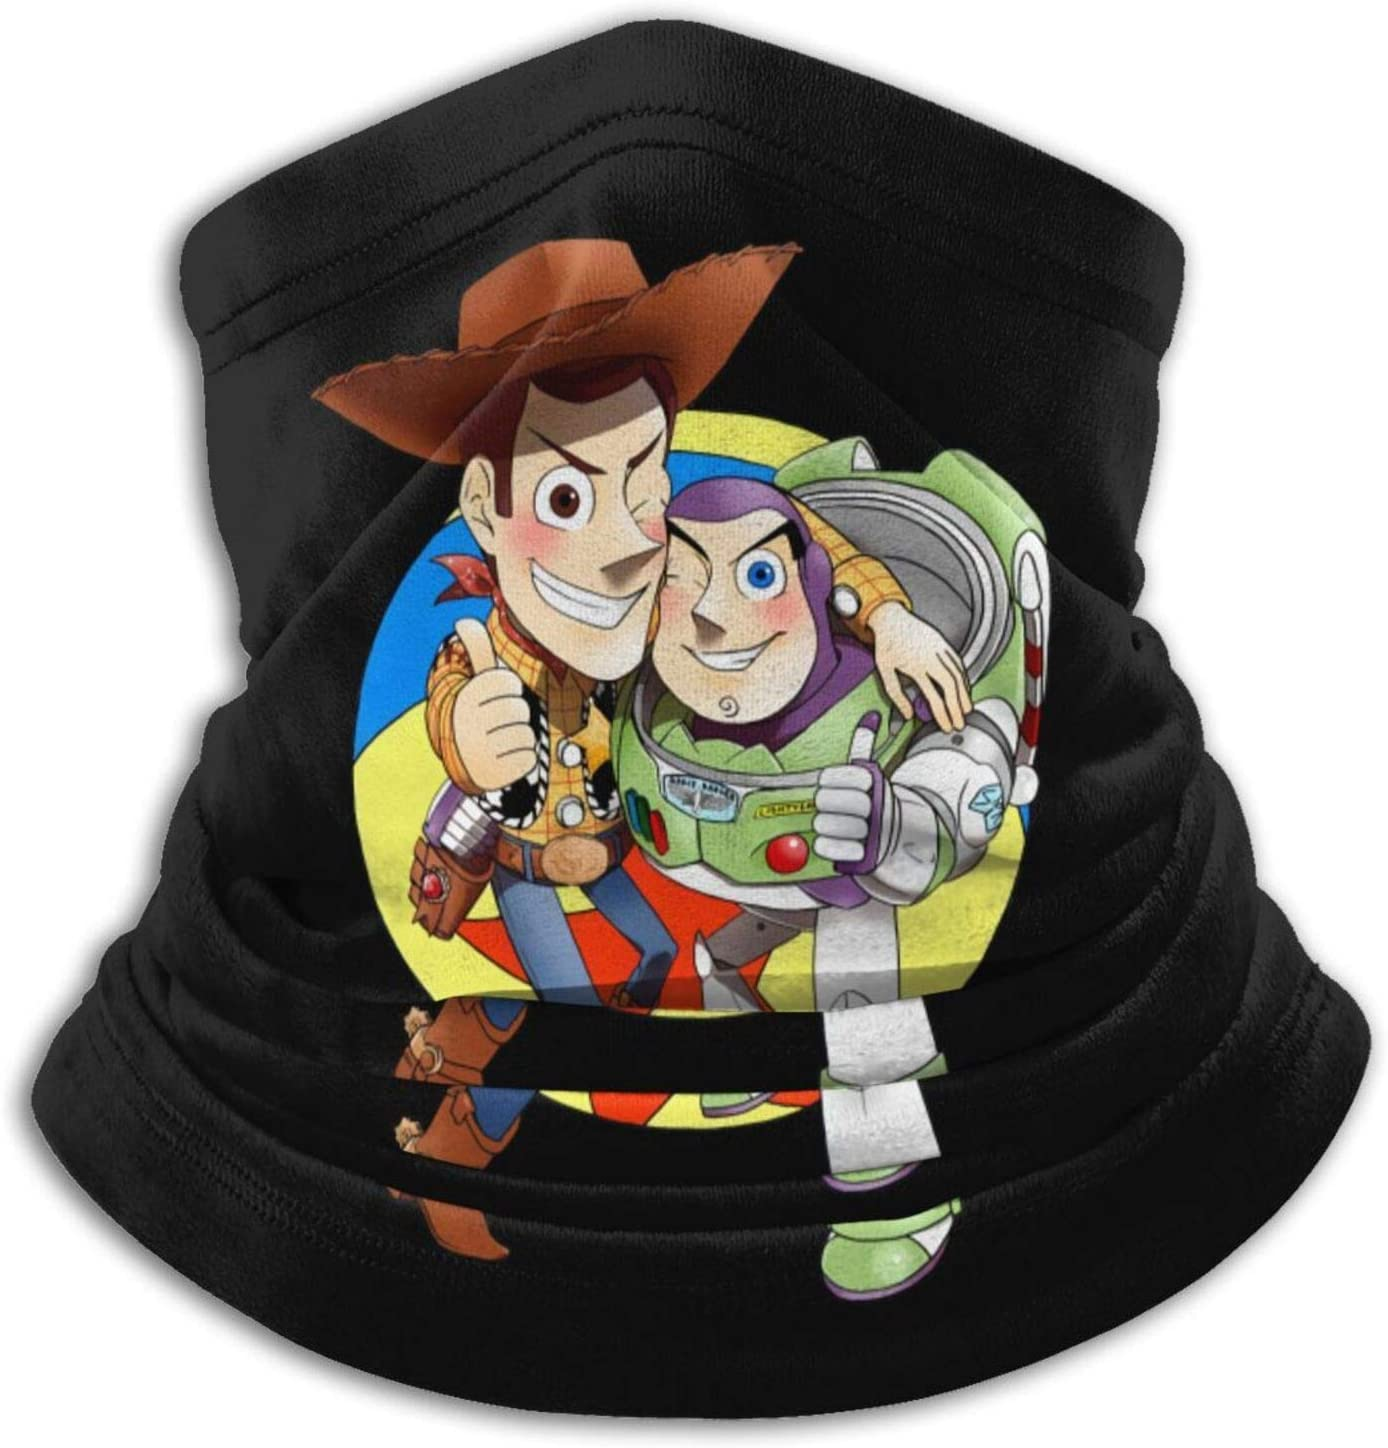 Buzz Lightyear and Woody Microfiber Neck Warmer Soft Headwear Face Scarf Mask for